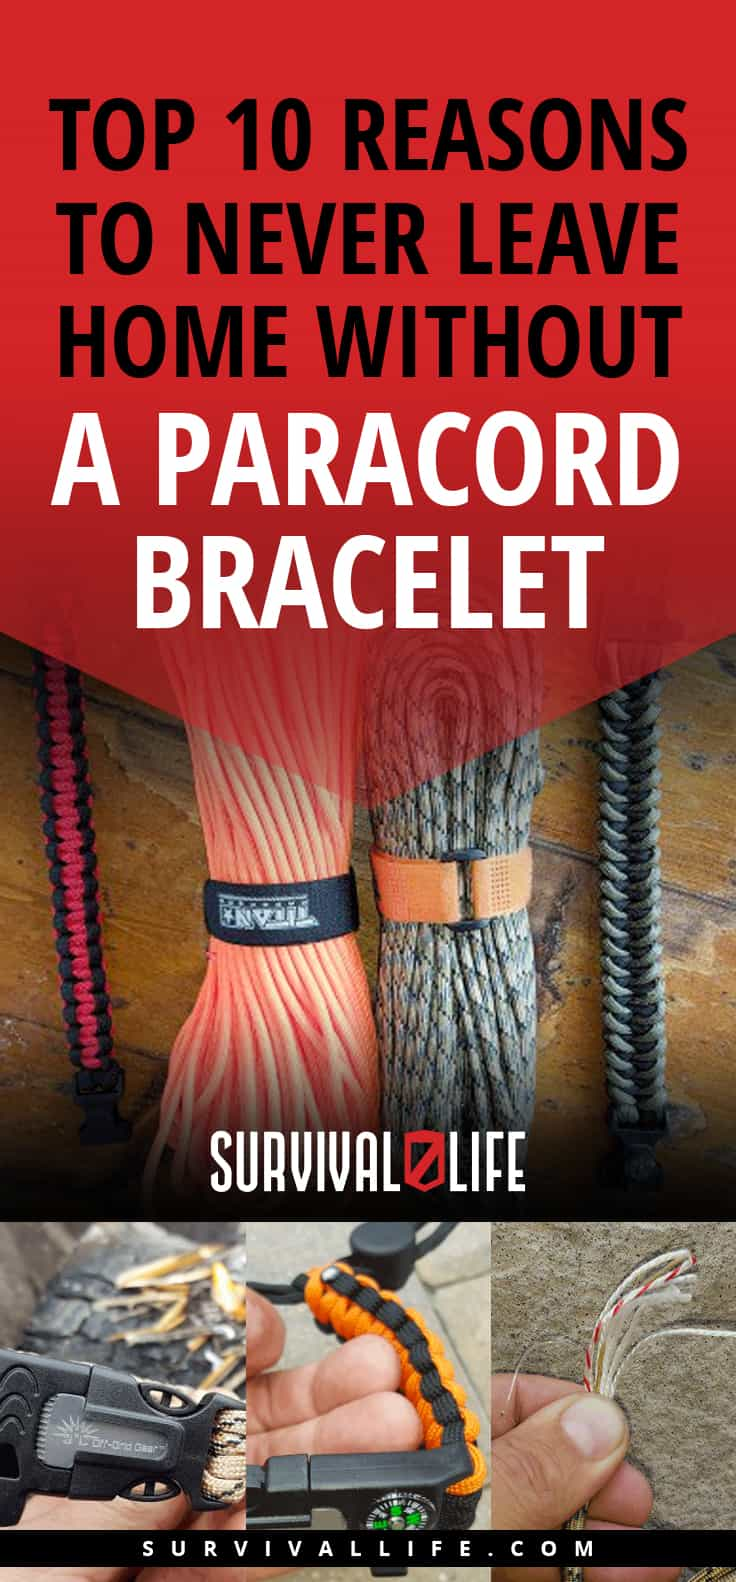 Top Reasons To Never Leave Home Without A Paracord Bracelet | https://survivallife.com/paracord-bracelets/